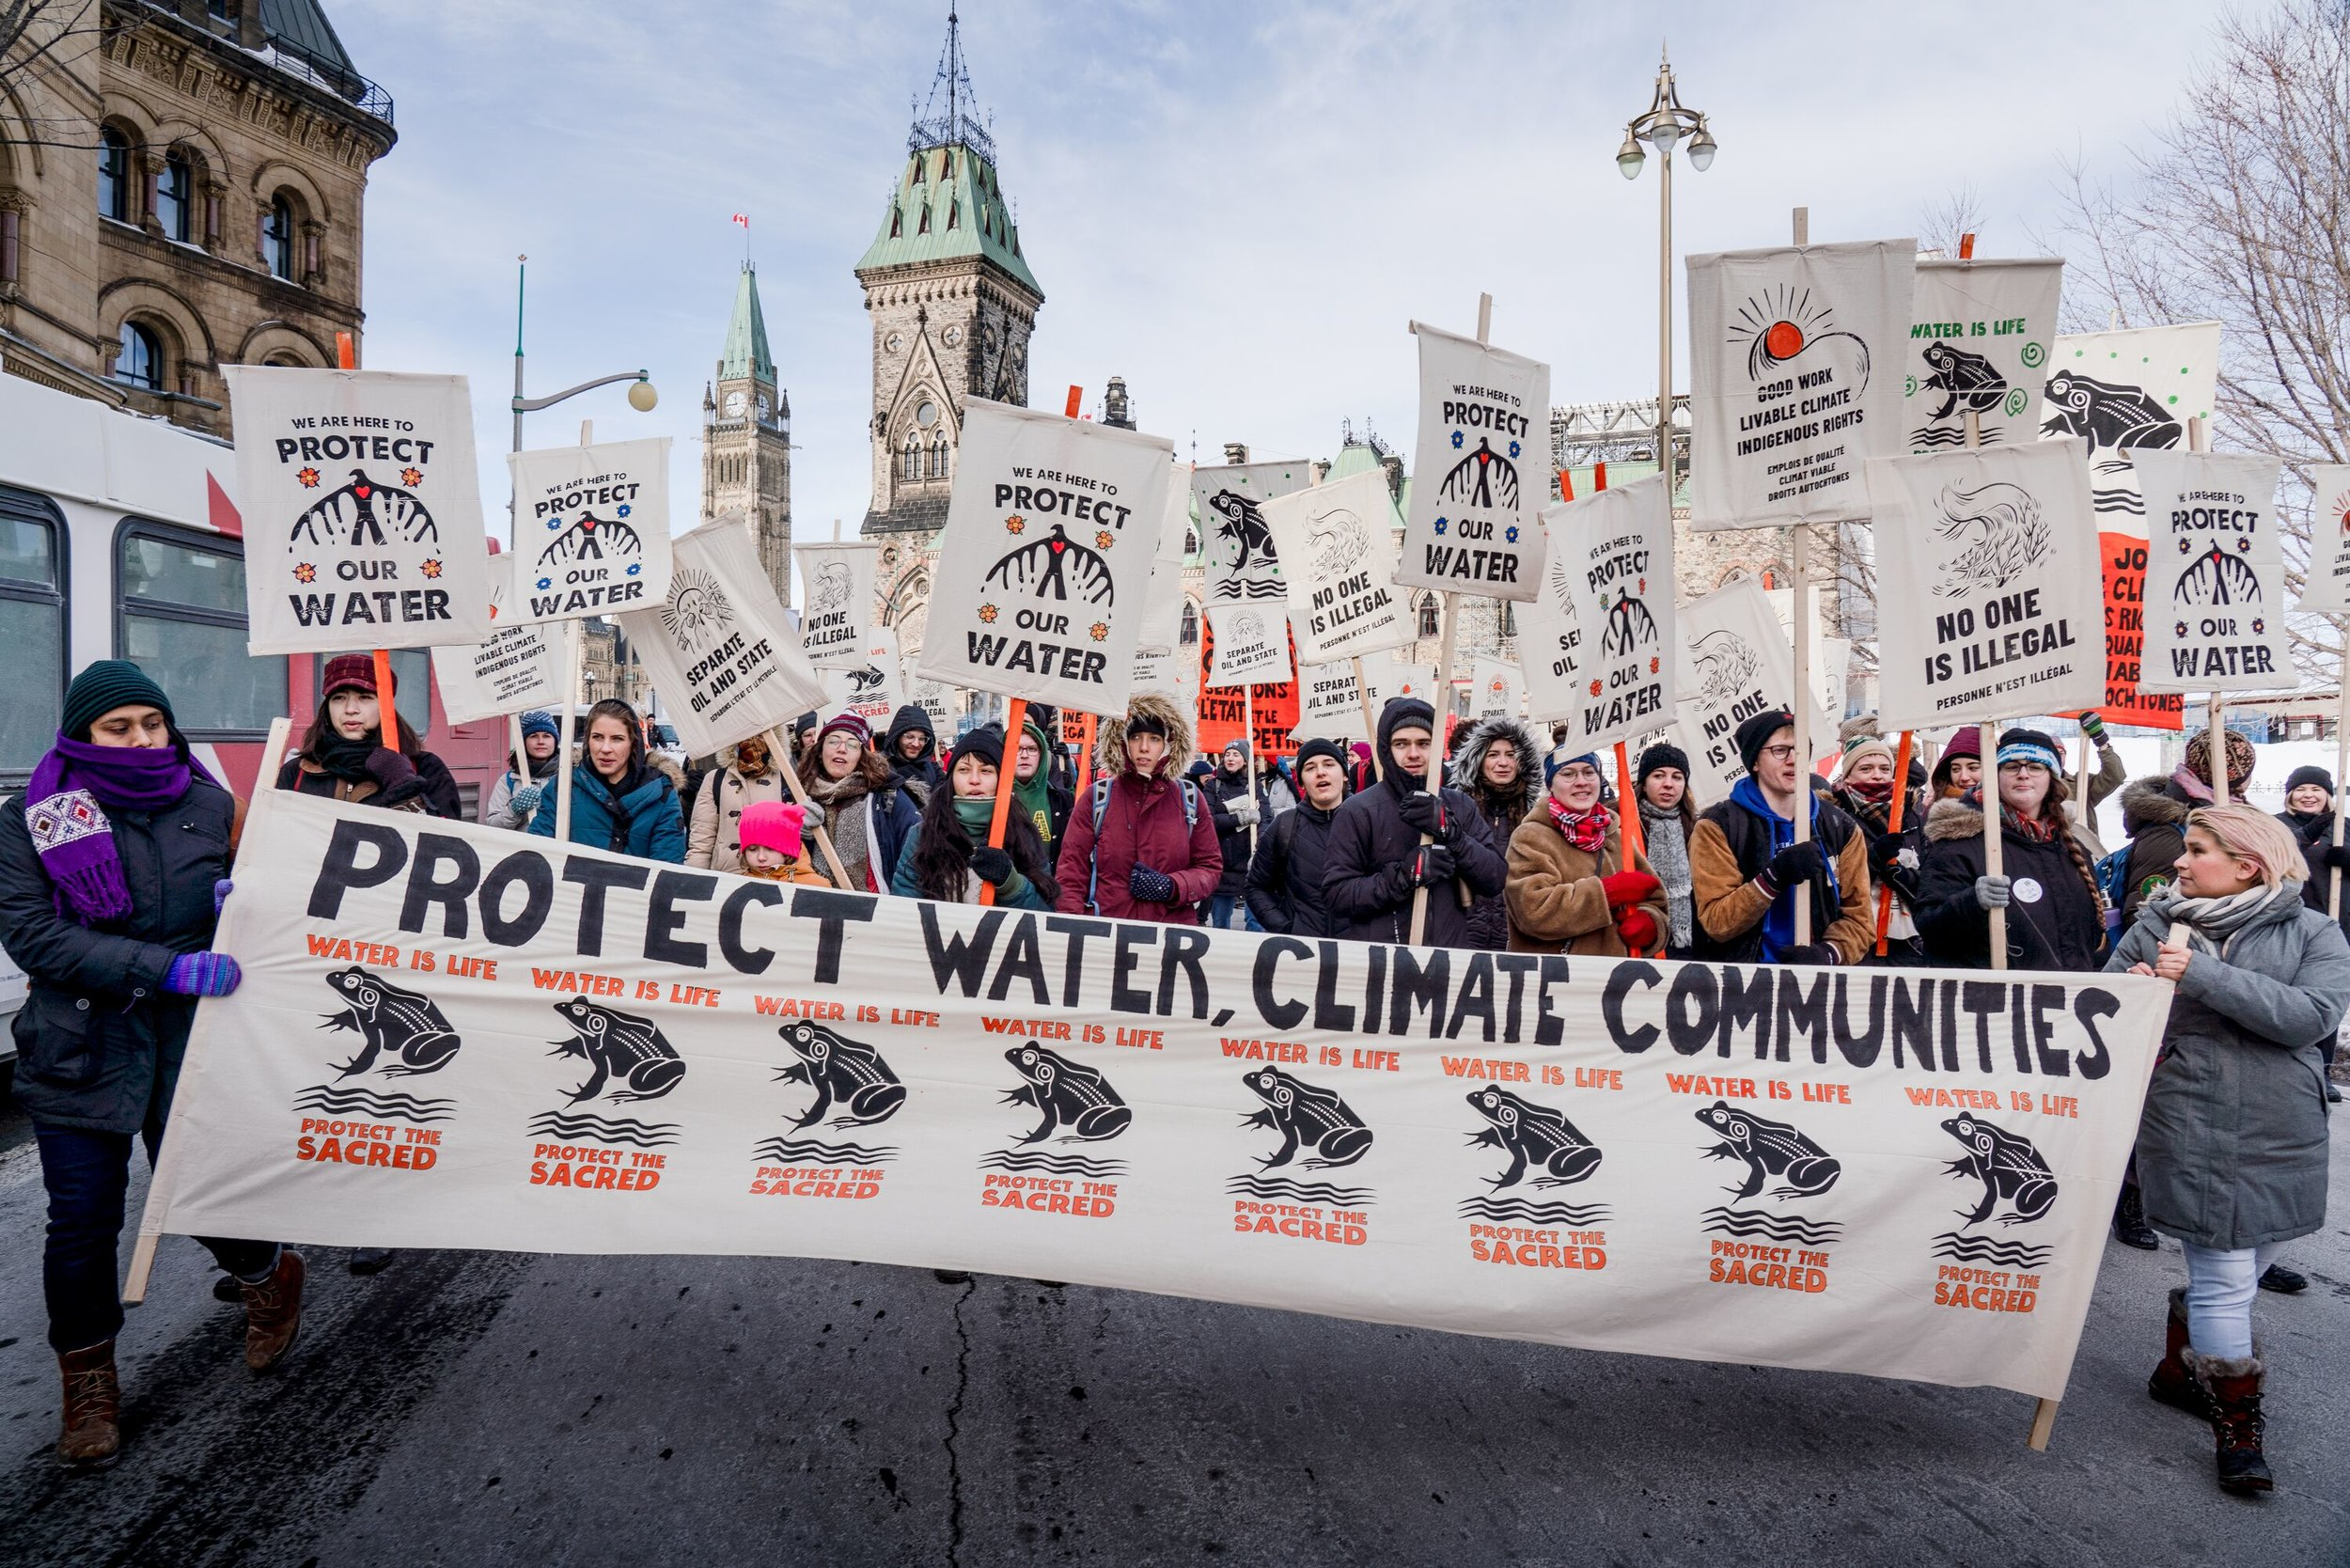 ONTARIO - In Ontario, activists organized in Toronto and Ottawa, rallying outside of the provincial and federal parliament buildings. Even small towns like Lindsay and Brighton were striking! In Kingston, student climate activists succeeded in pressuring the city to to declare a climate emergency.